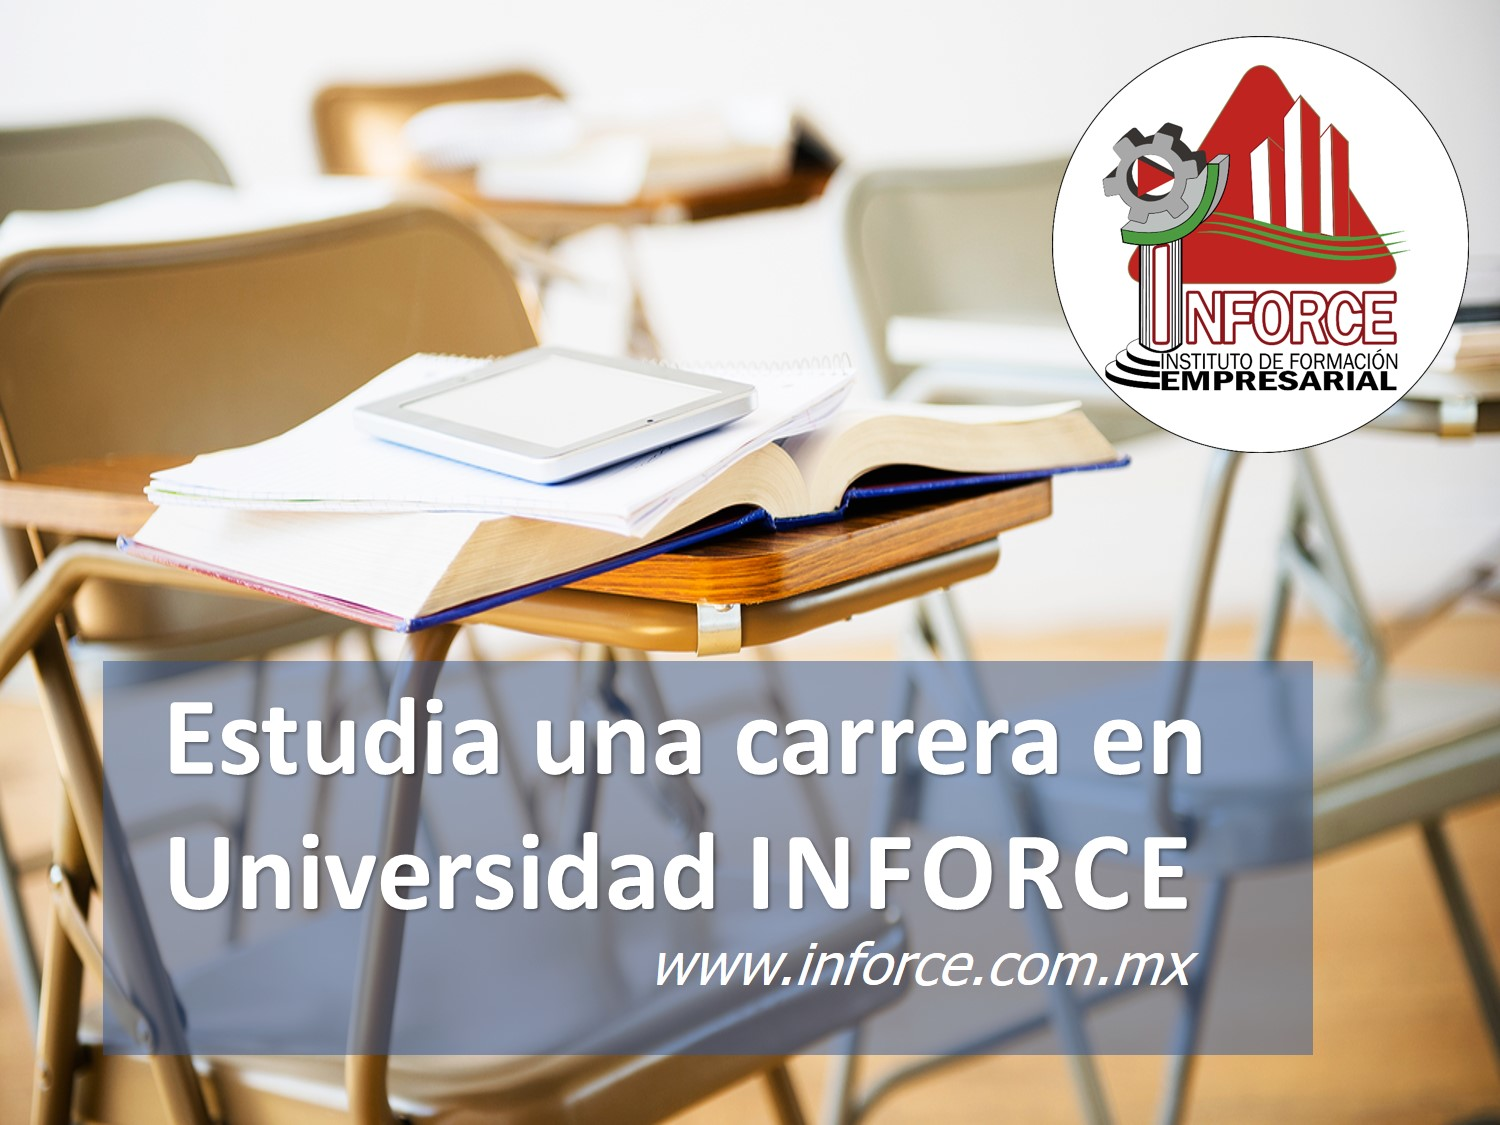 universidad-inforce-08.jpg